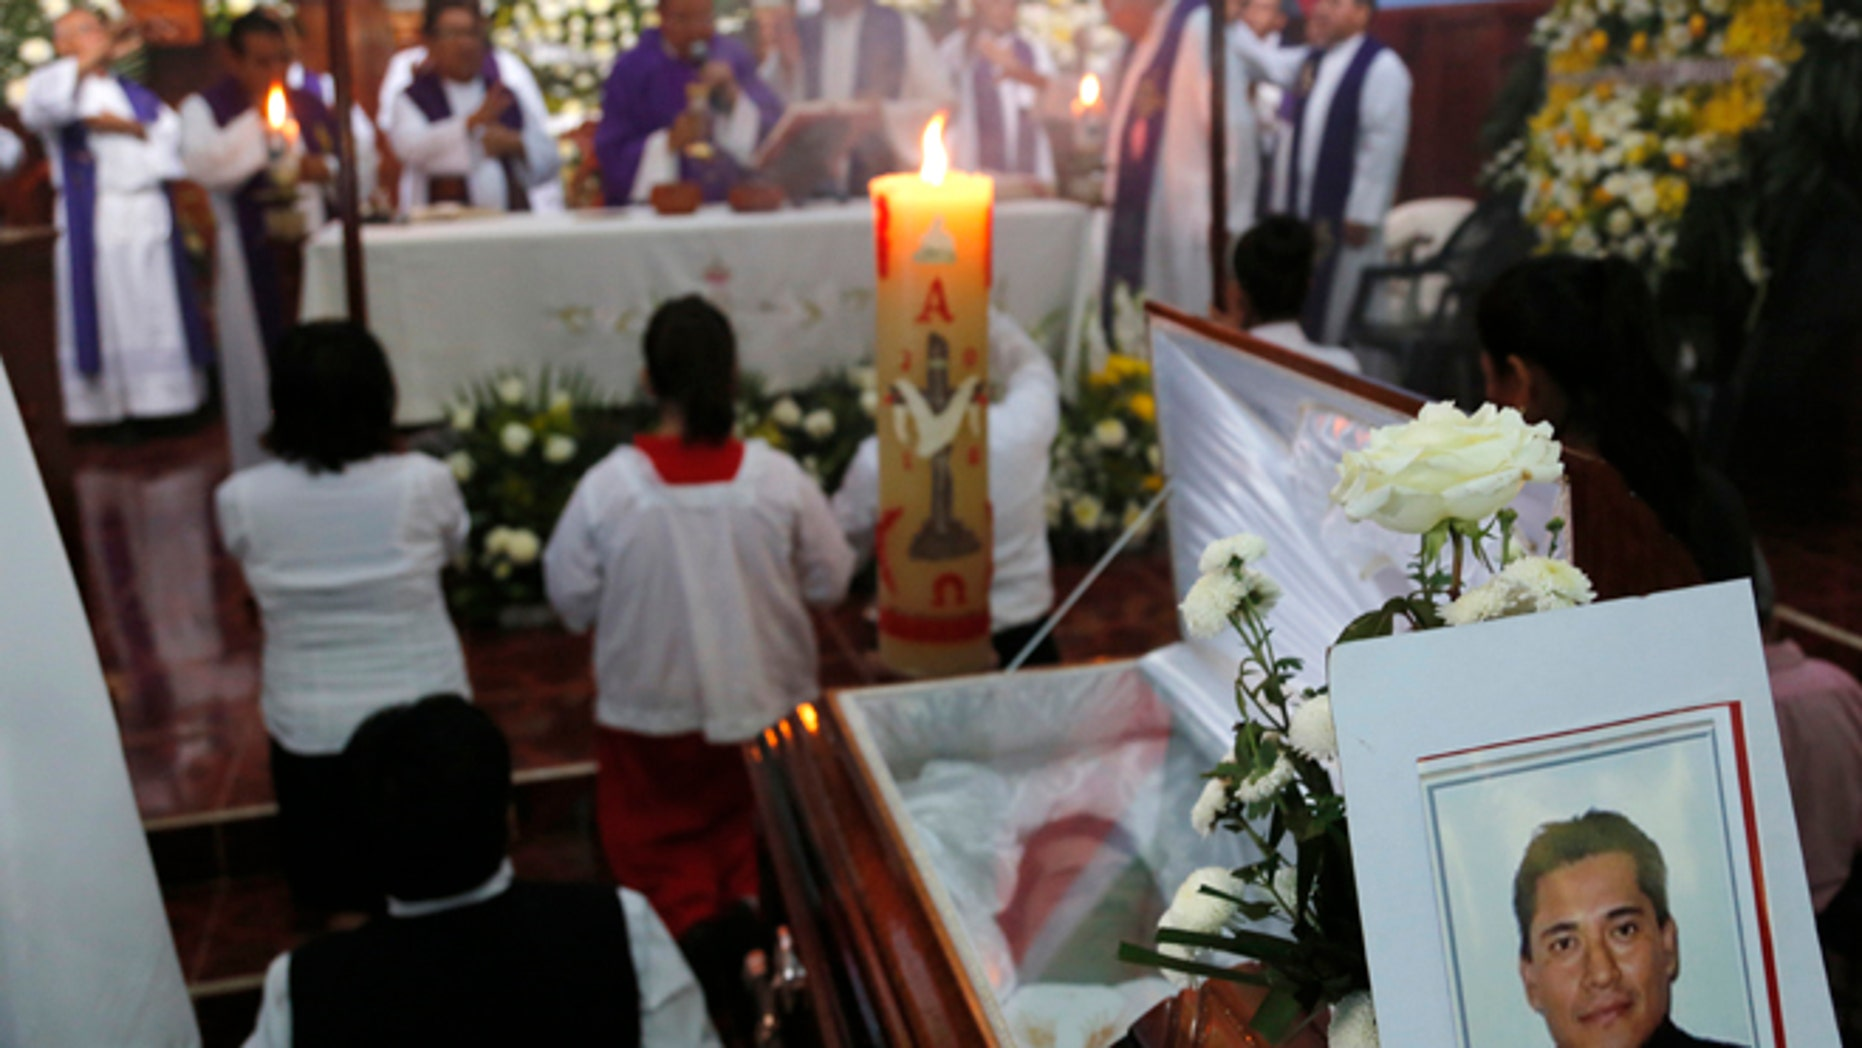 This Sept. 21, 2016 photo shows the funeral Mass for slain Rev. Jose Alfredo Suarez de la Cruz at Our Lady of Asuncion Church in Paso Blanco, Veracruz state, Mexico, his hometown. Church leaders are increasingly frustrated by authoritiesââ¬â¢ inability to protect their priests under Mexican President Enrique Pena Nietoââ¬â¢s administration. (AP Photo/Marco Ugarte)